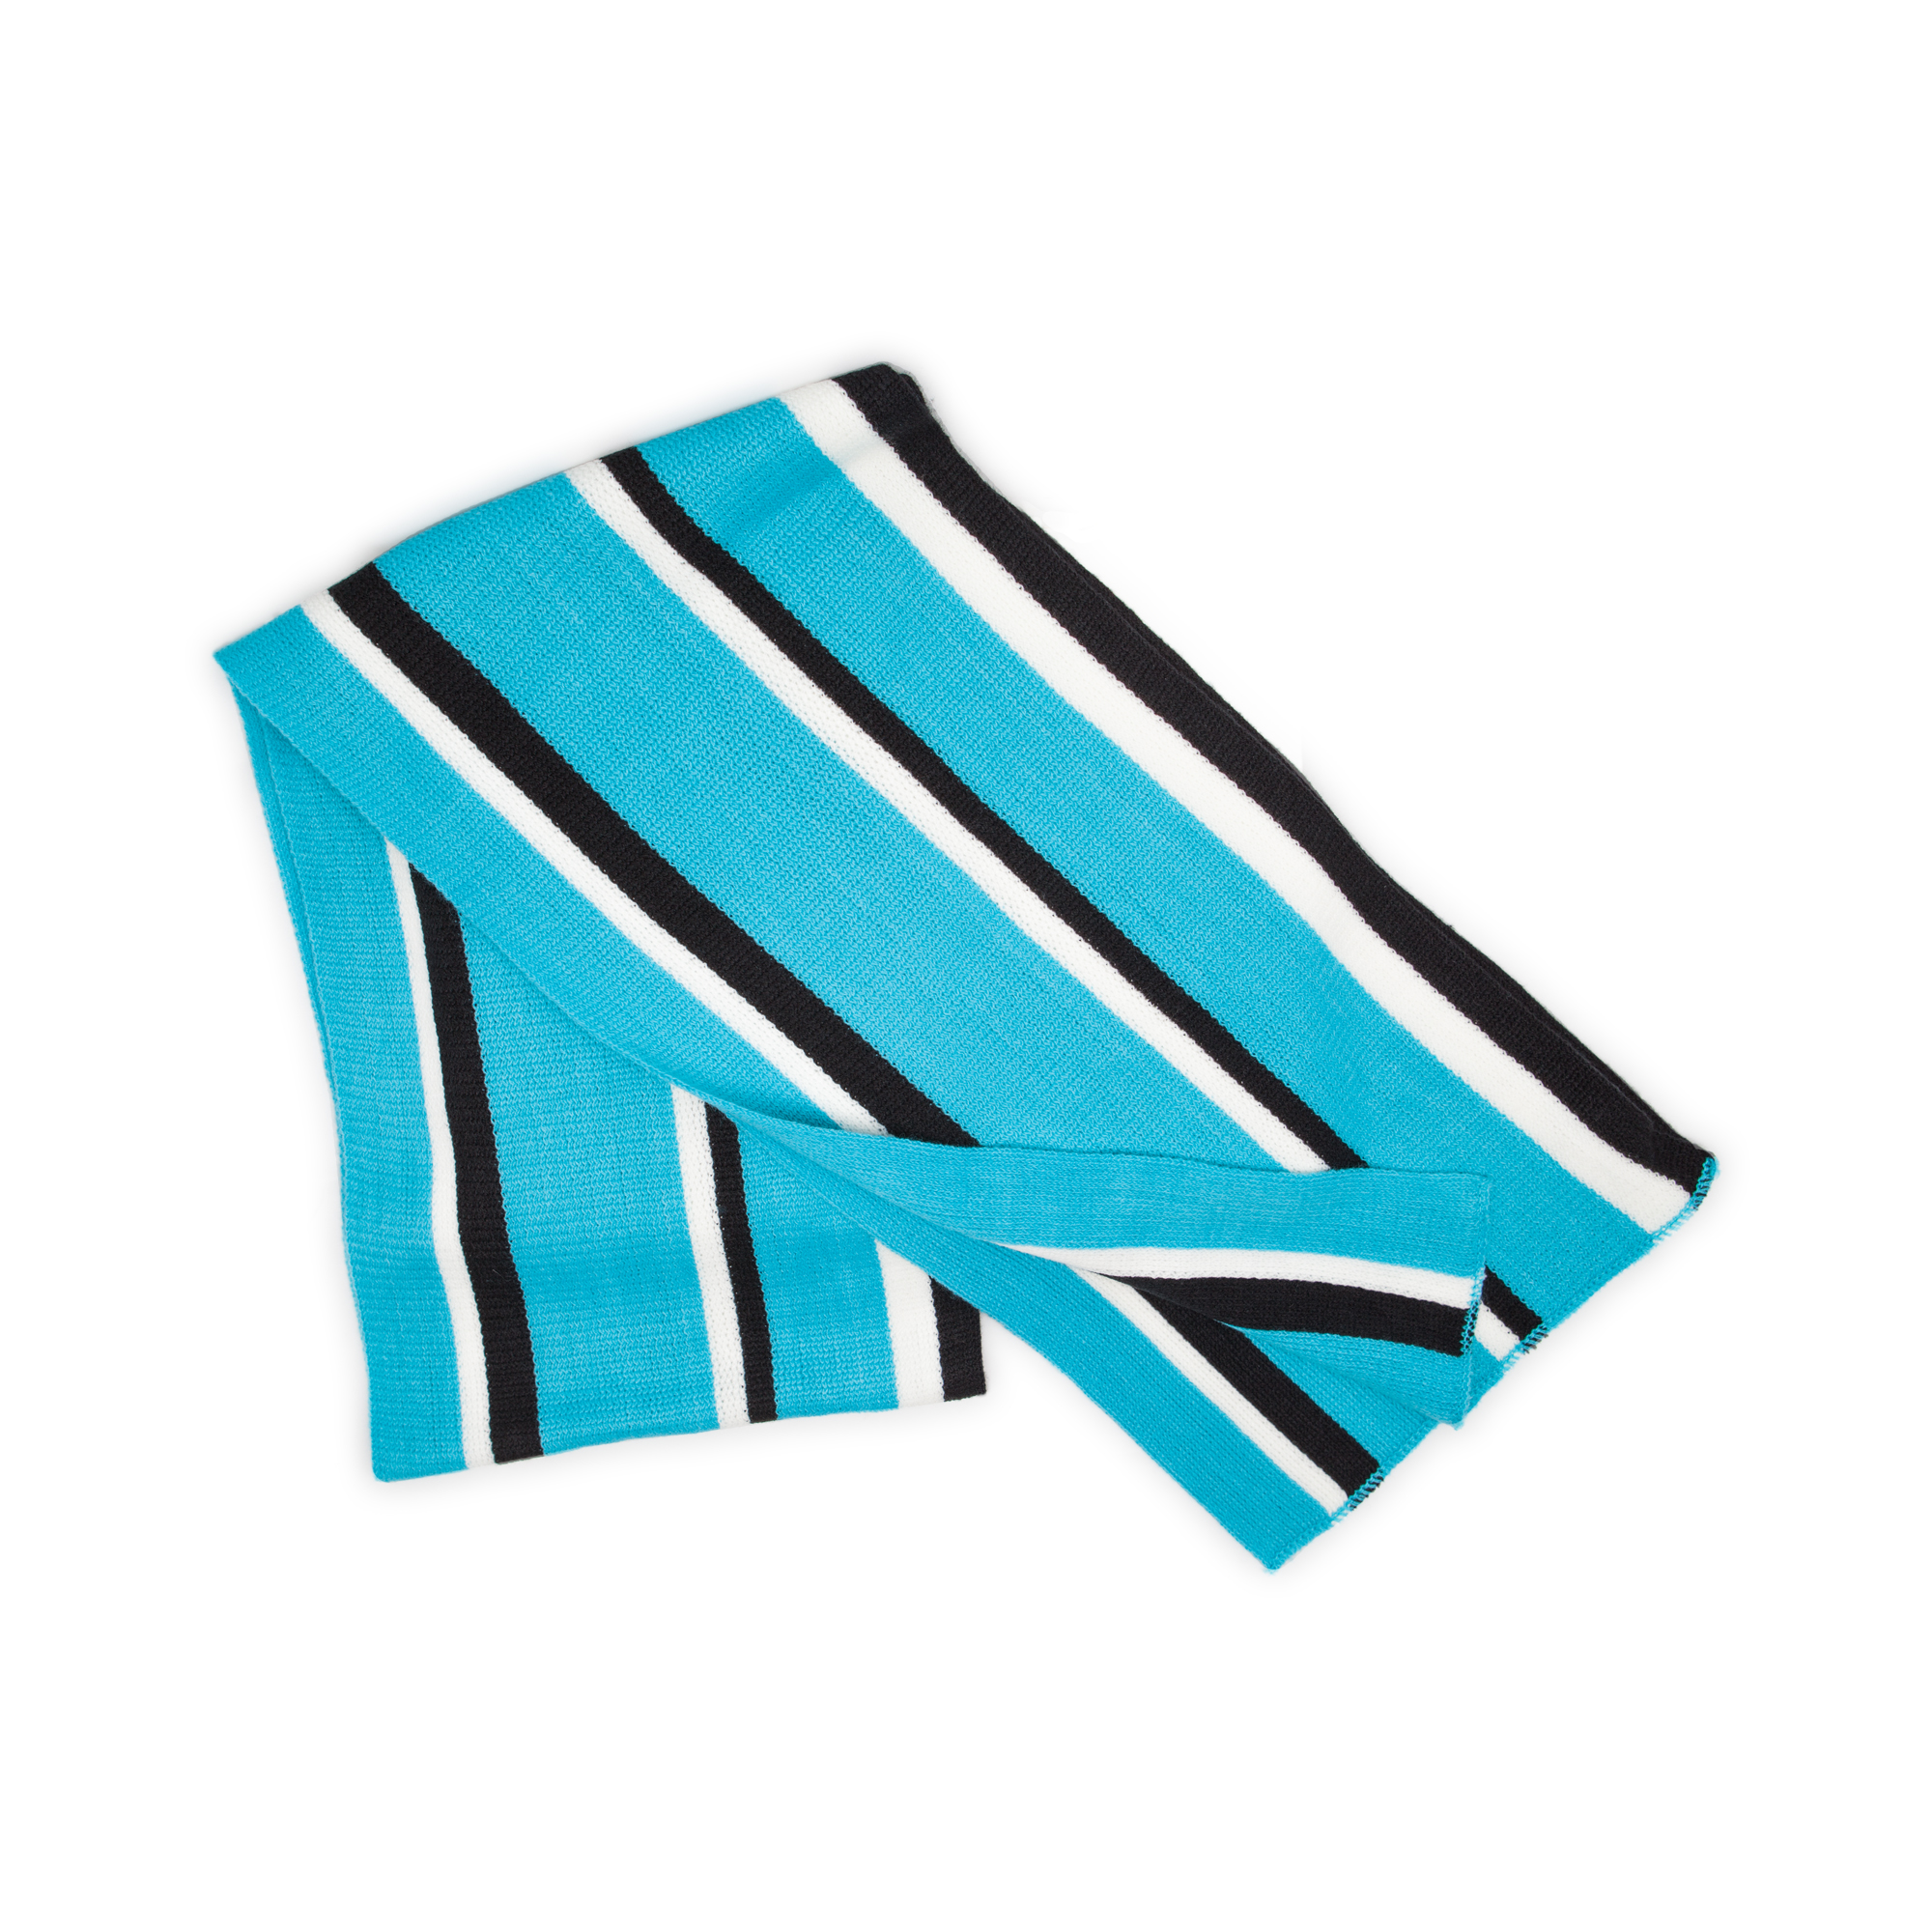 Wear this stylish Atlas Copco scarf when you want that warm and cosy feeling outdoors. 